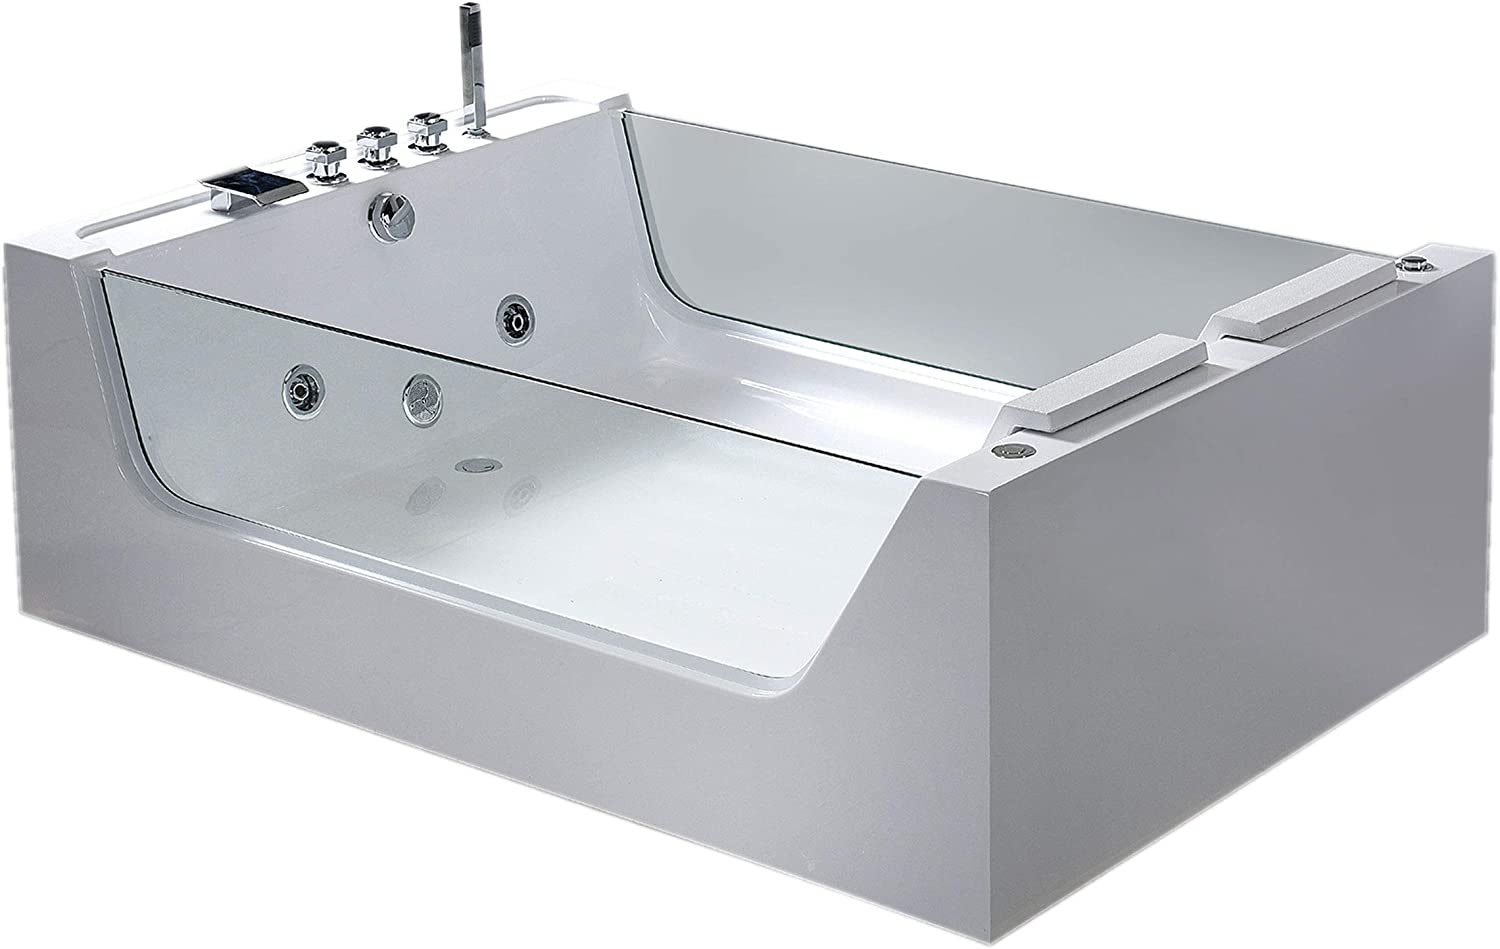 Whirlpool bathtub hydrotherapy Hot tub 2 Department store We OFFer at cheap prices 8 water persons and jet